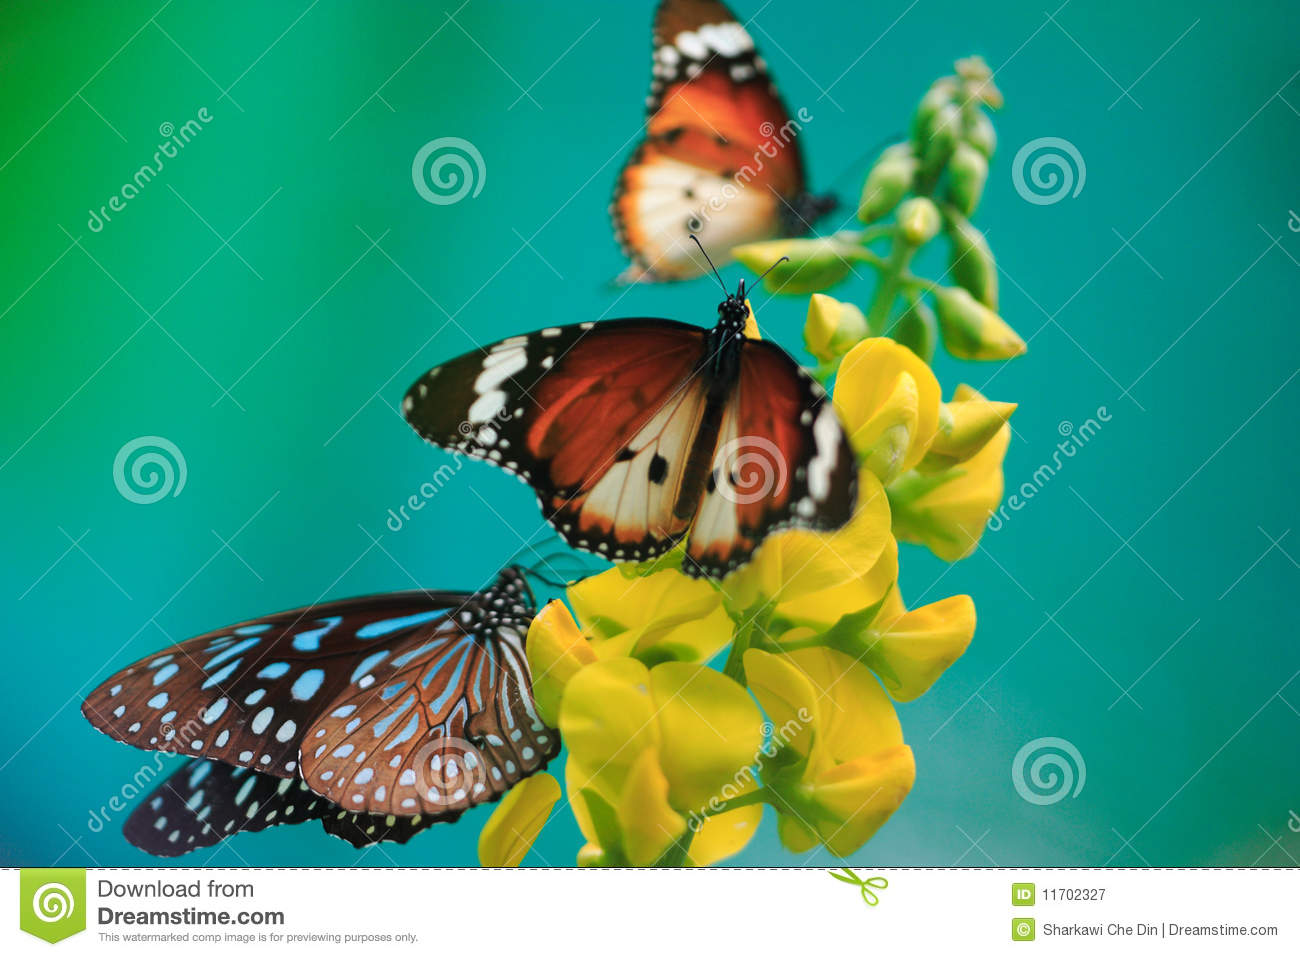 Butterflies, yellow flower on turquoise background